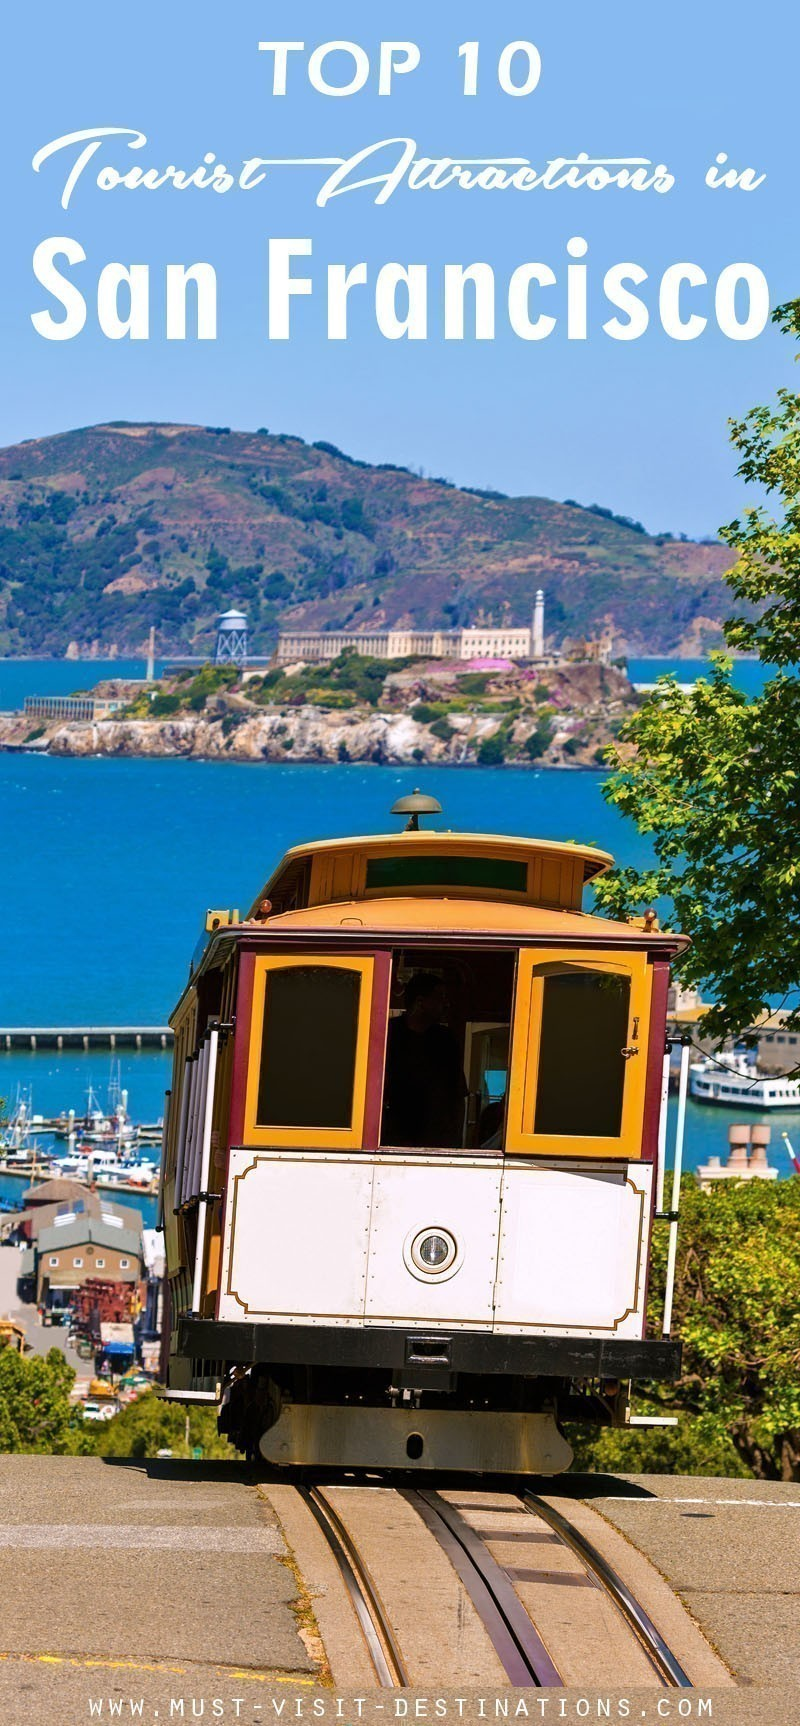 TOP 10 Tourist Attractions In San Francisco #travel #sanfrancisco